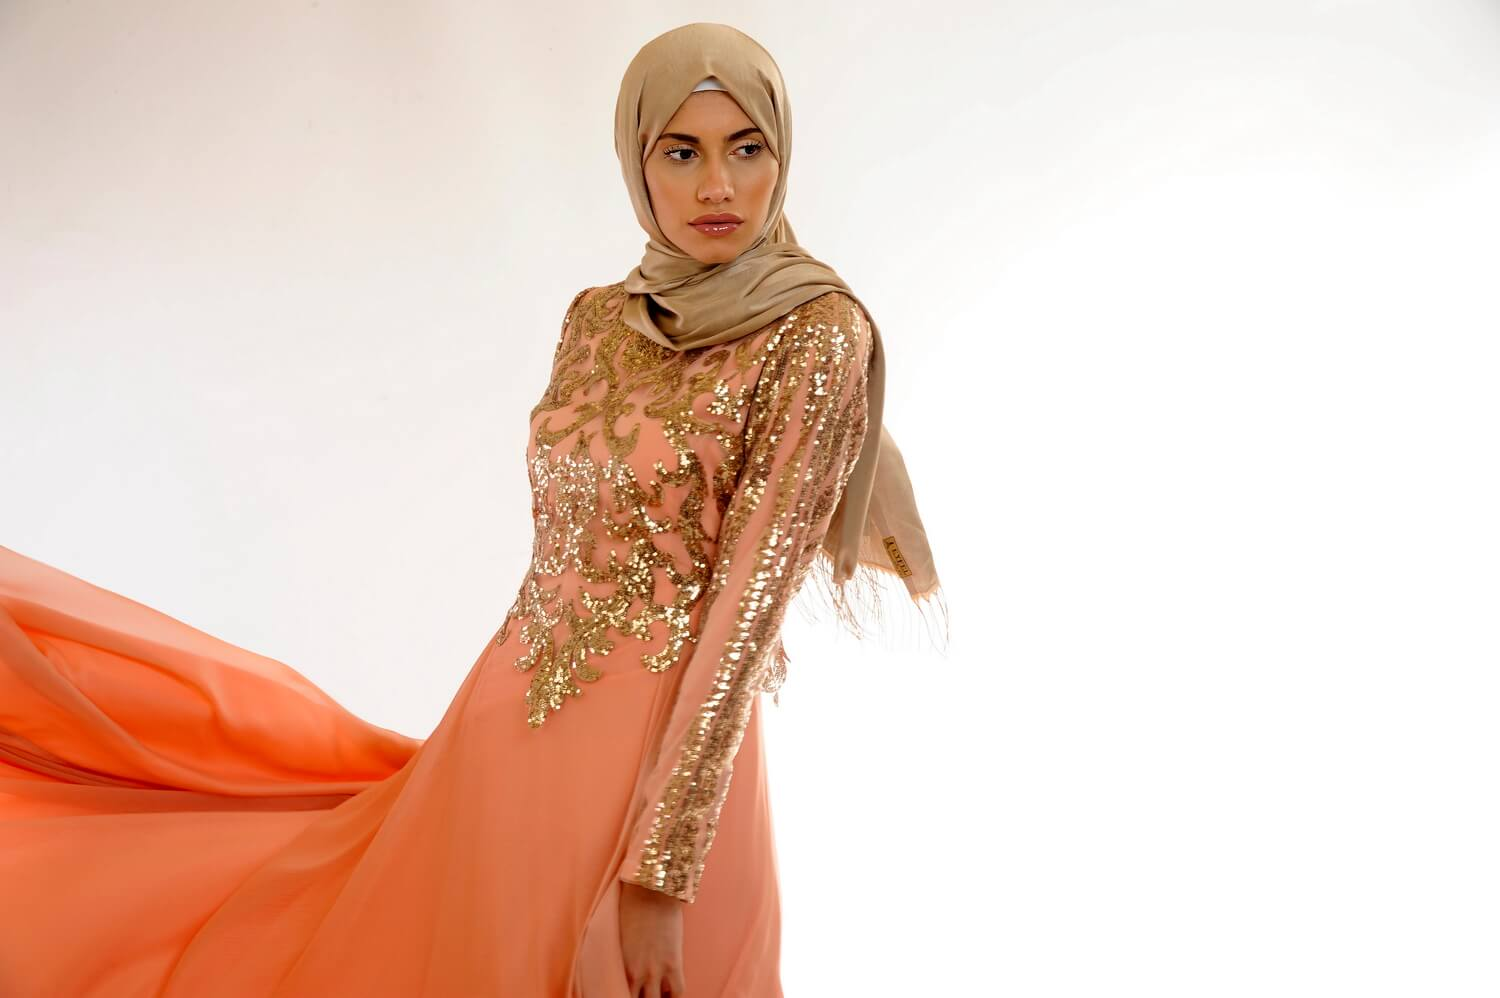 Advertising photographer for fashion sales and e-commerce, Portrait photography in Birmingham